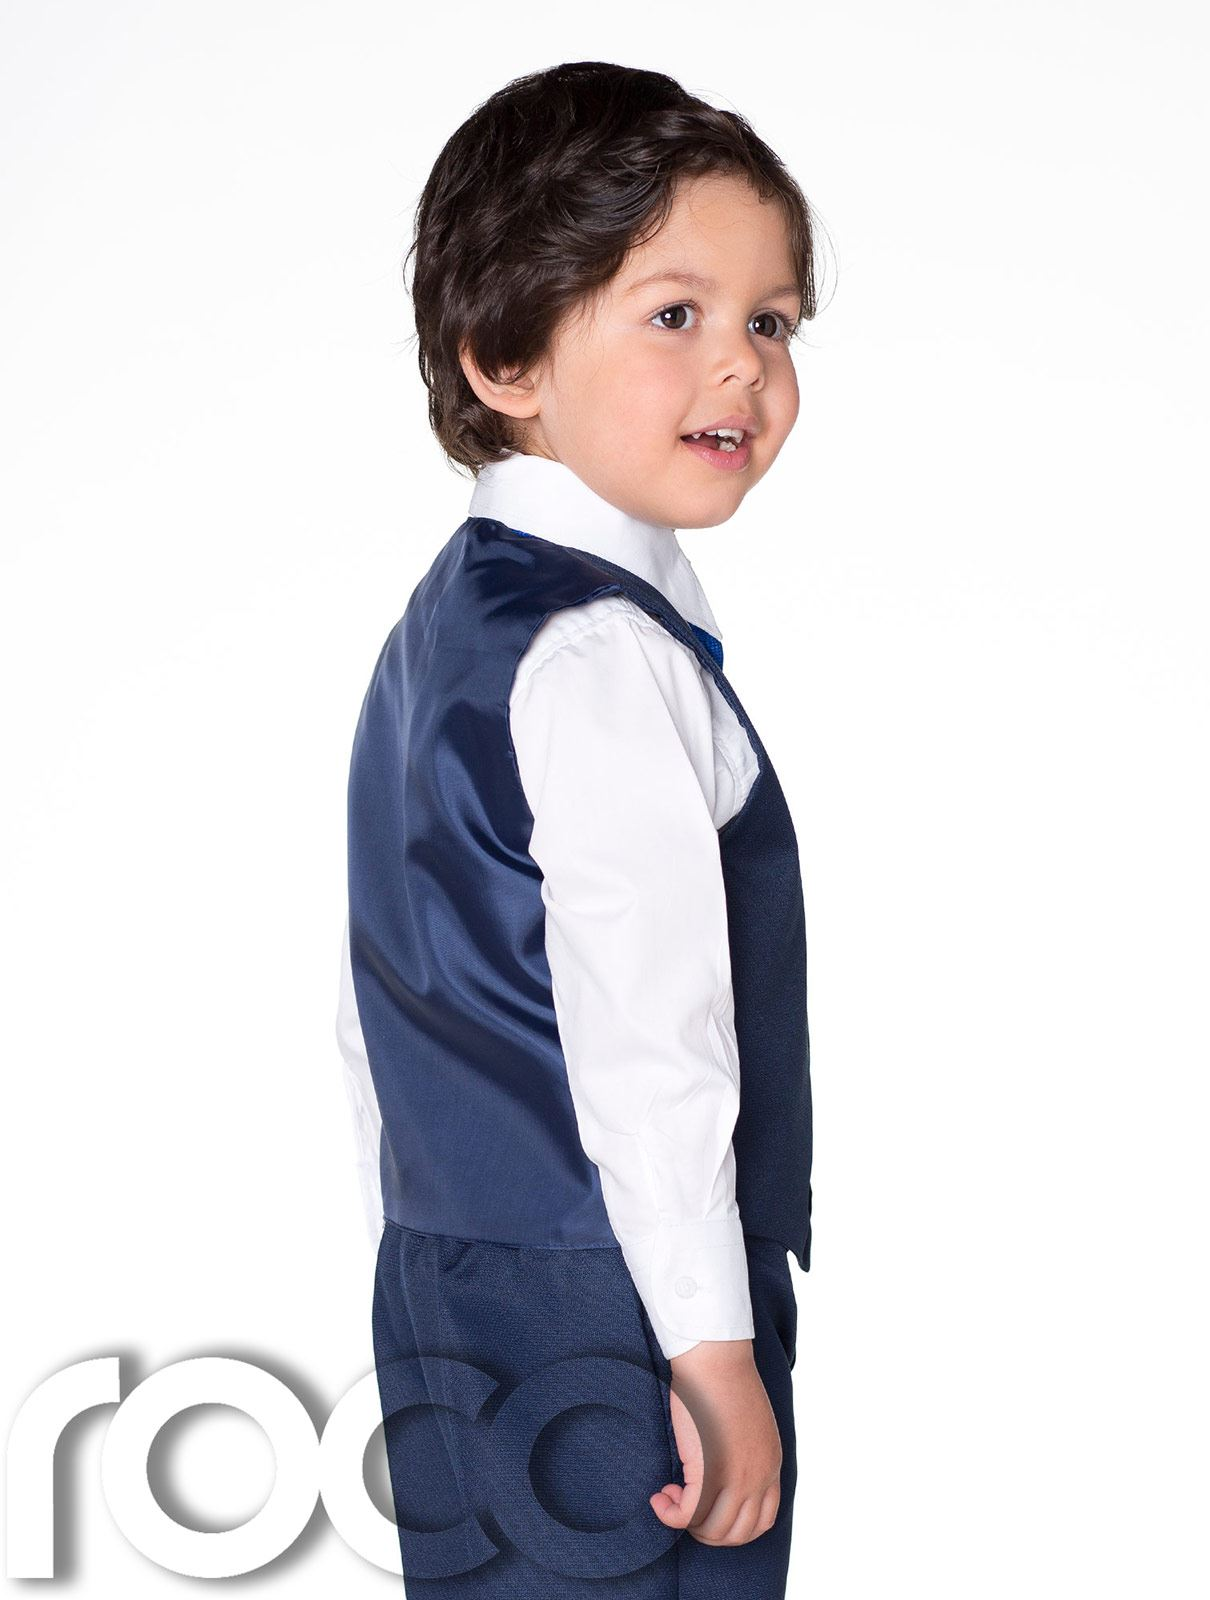 Page-Boy-Suits-Boys-Waistcoat-Suit-Boys-suits-Navy-Suit-Grey-Suit-Blue-Suit thumbnail 9